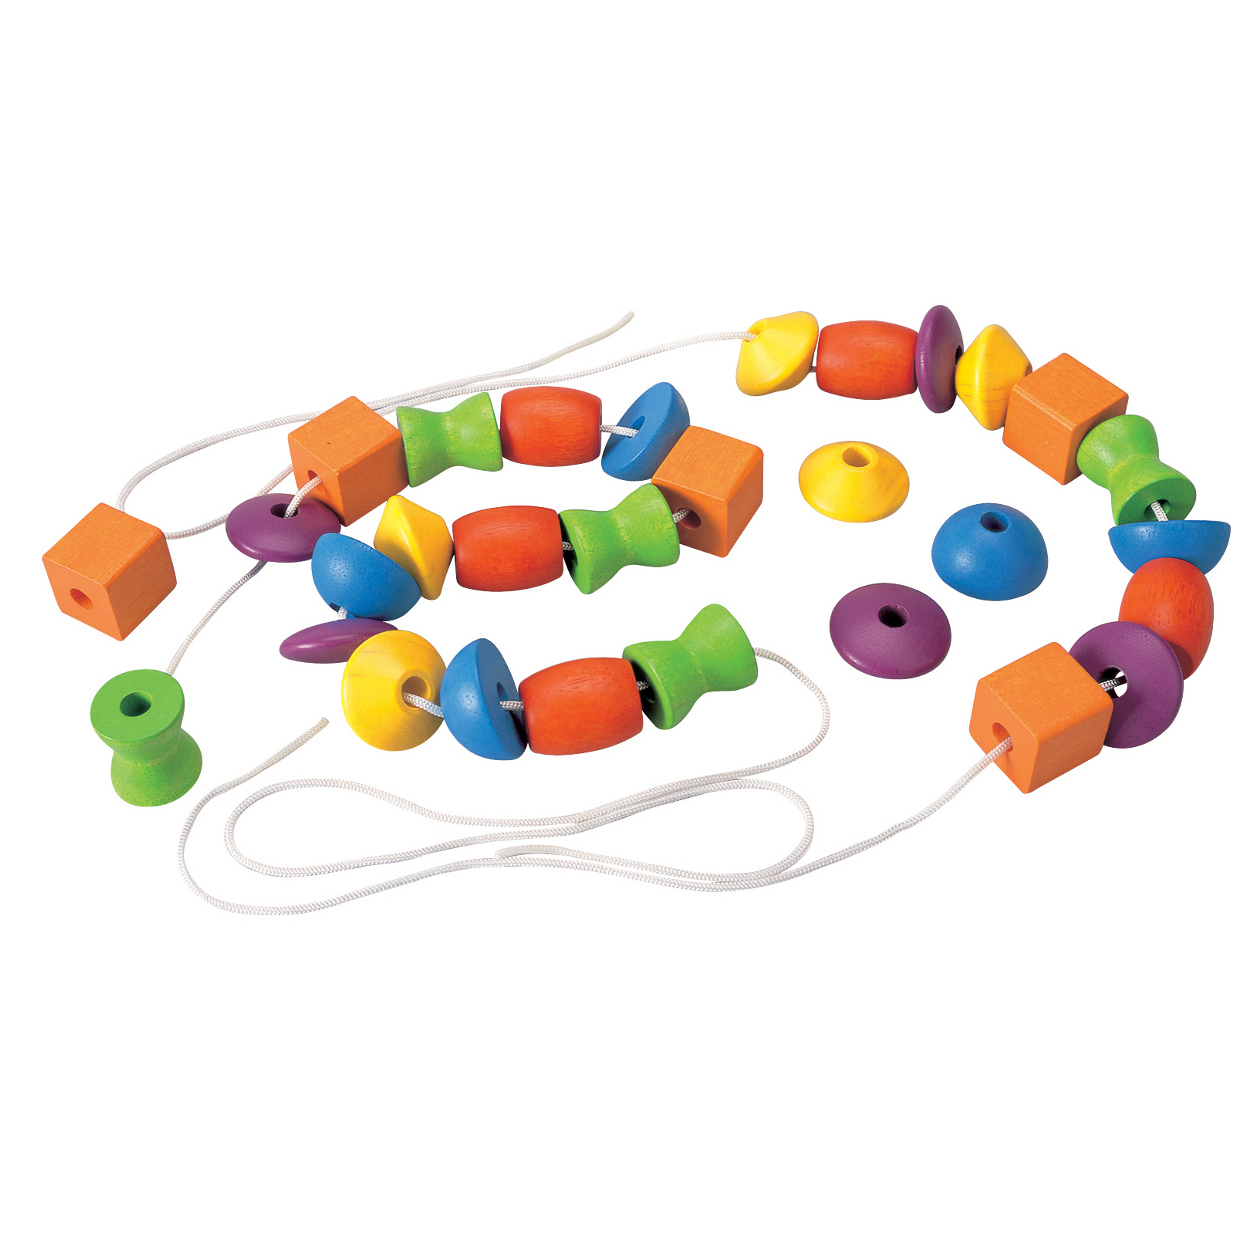 Lacing Beads Wooden Educational Toy #JyoPUA.